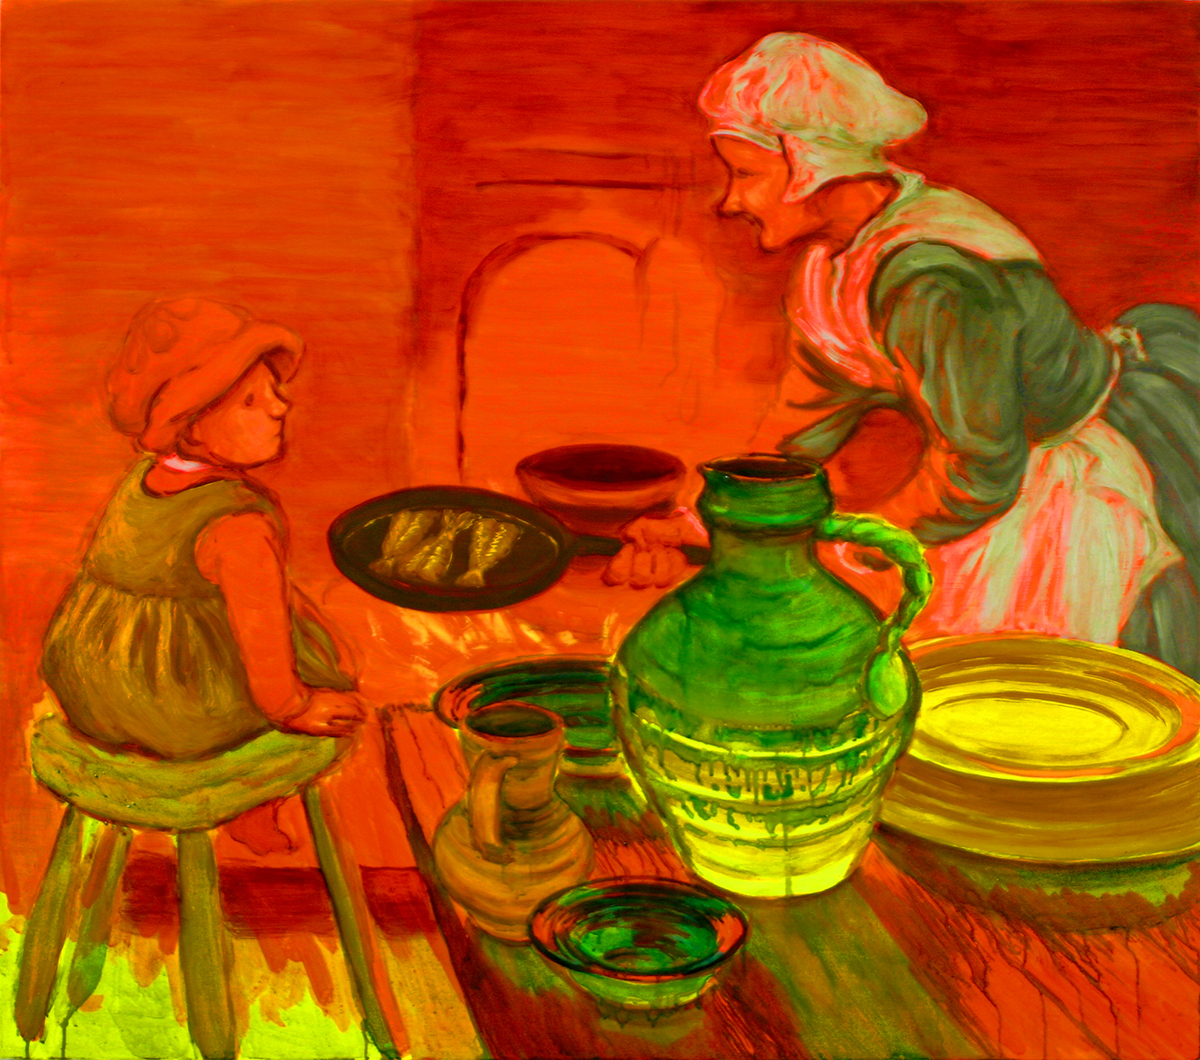 Frying fish, 2007